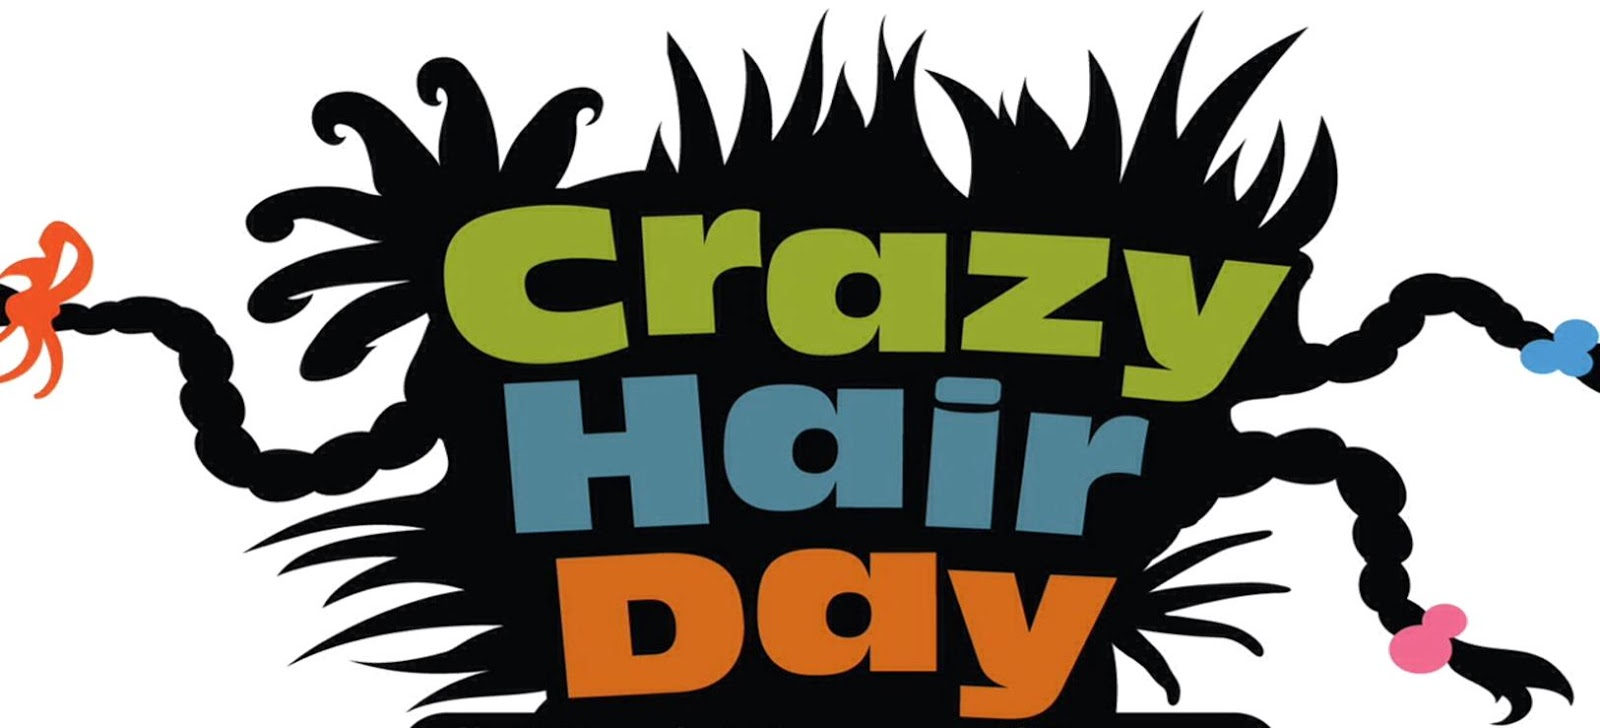 room 25 with mme mcallister crazy hair day friday rh mmemcallister blogspot com crazy hair clipart images crazy hair day clipart